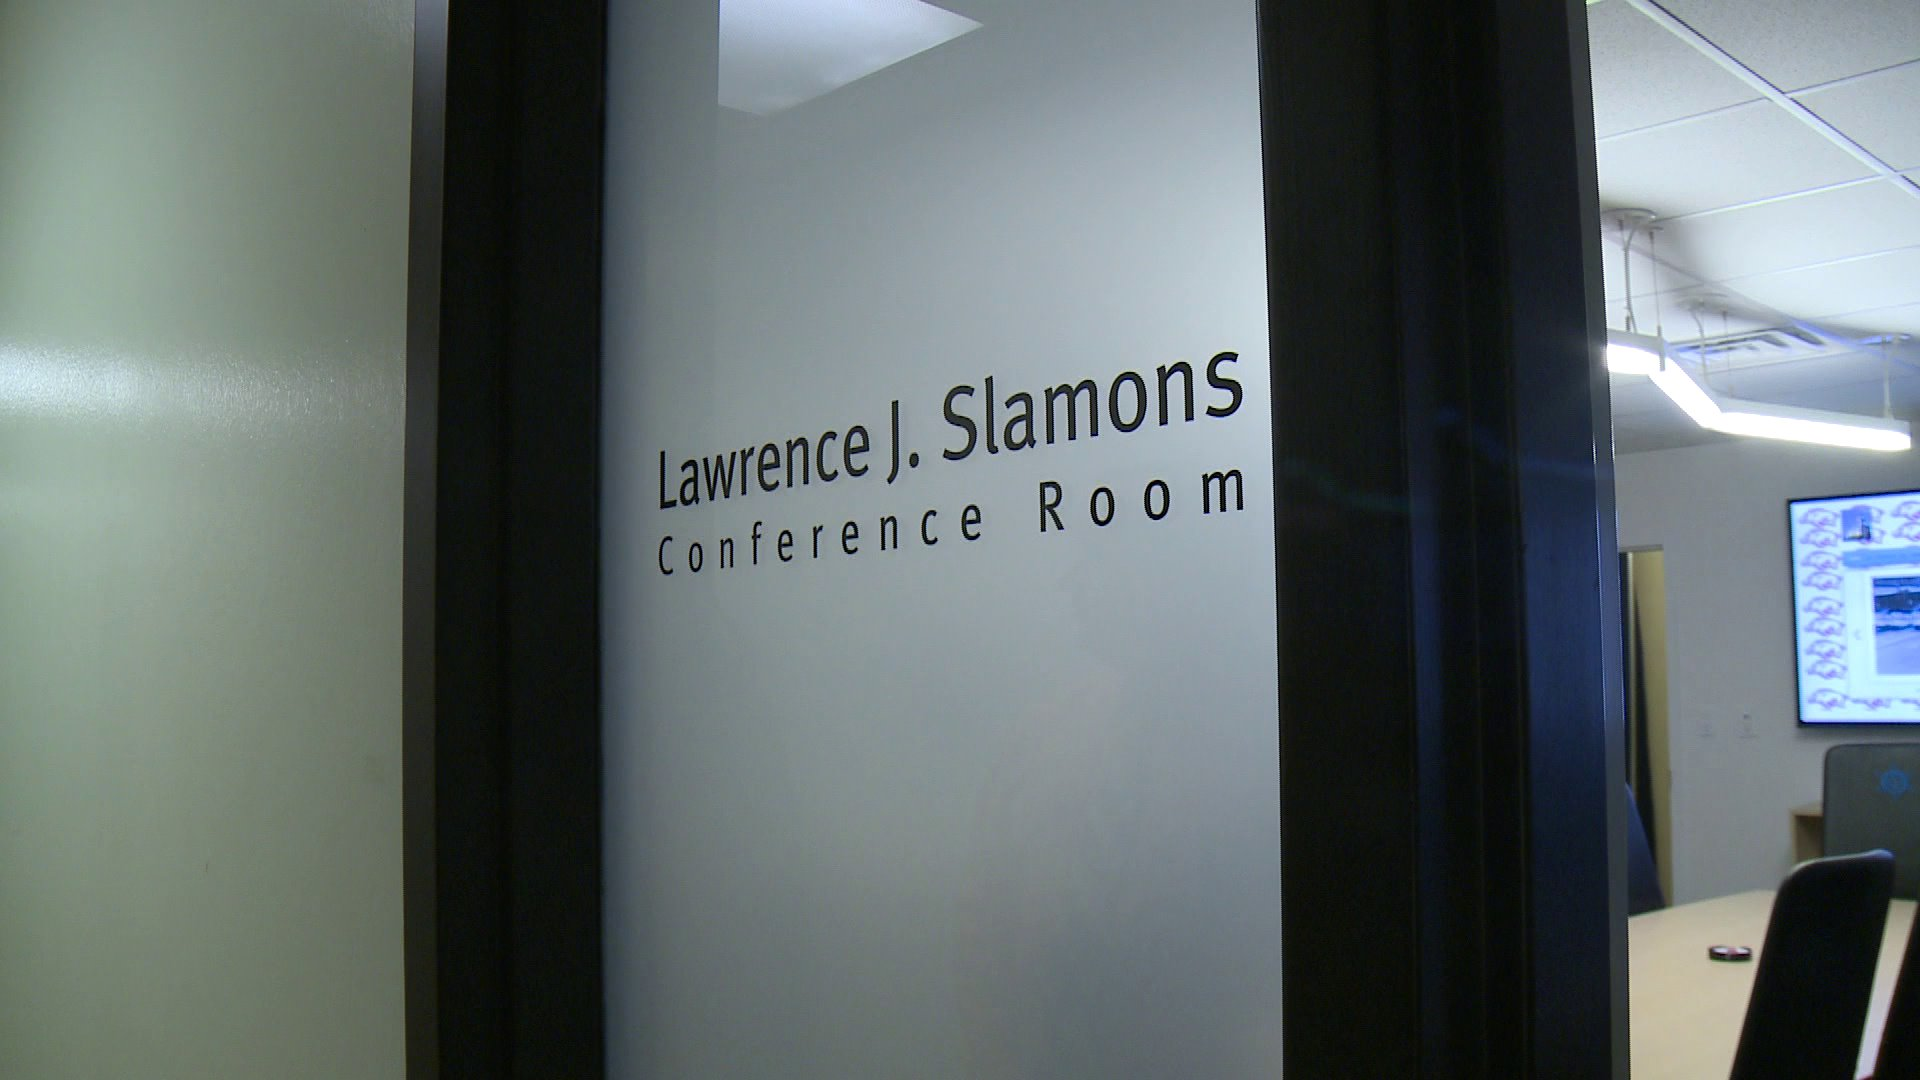 larry-slamons-conference-room-uapd